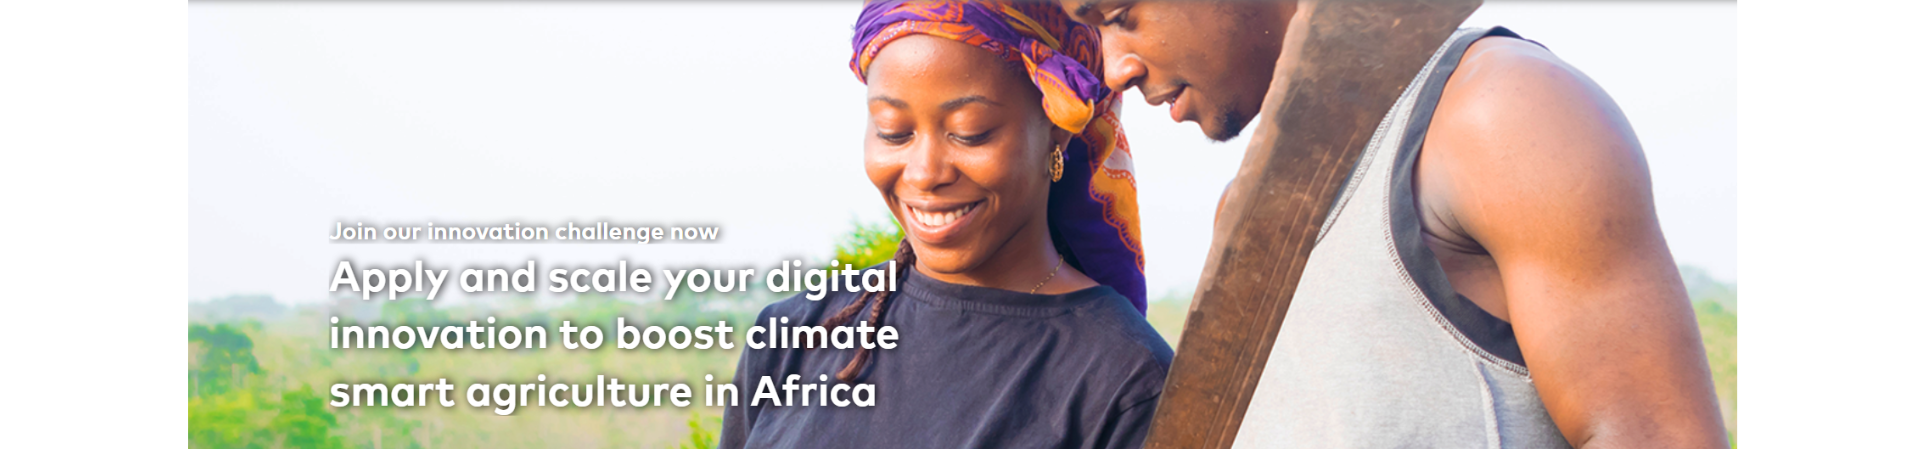 Digital Innovation Challenge for Agriculture in Africa